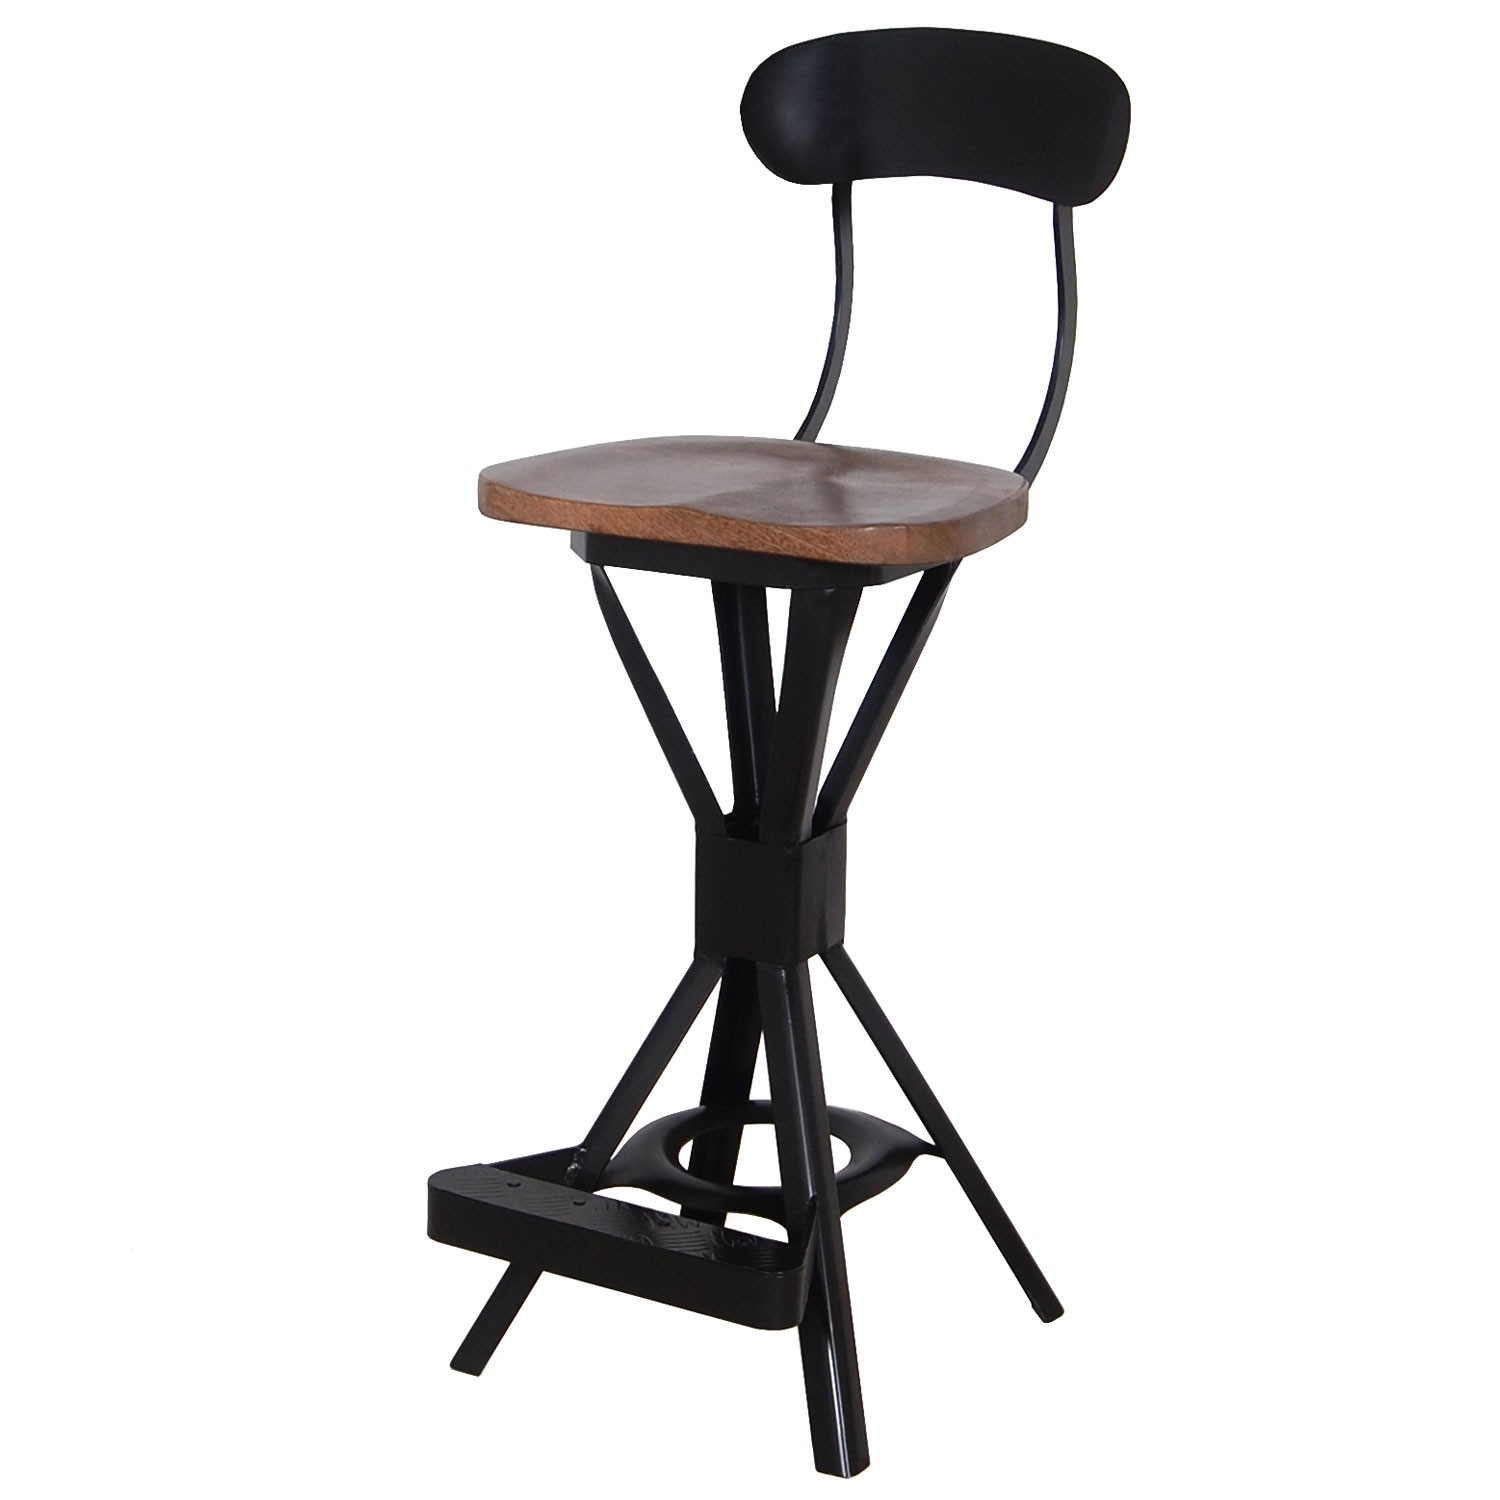 Chaise De Bar Design En Rotin Chaise De Bar Design Chaise De Bar Design En Rotin 69cm